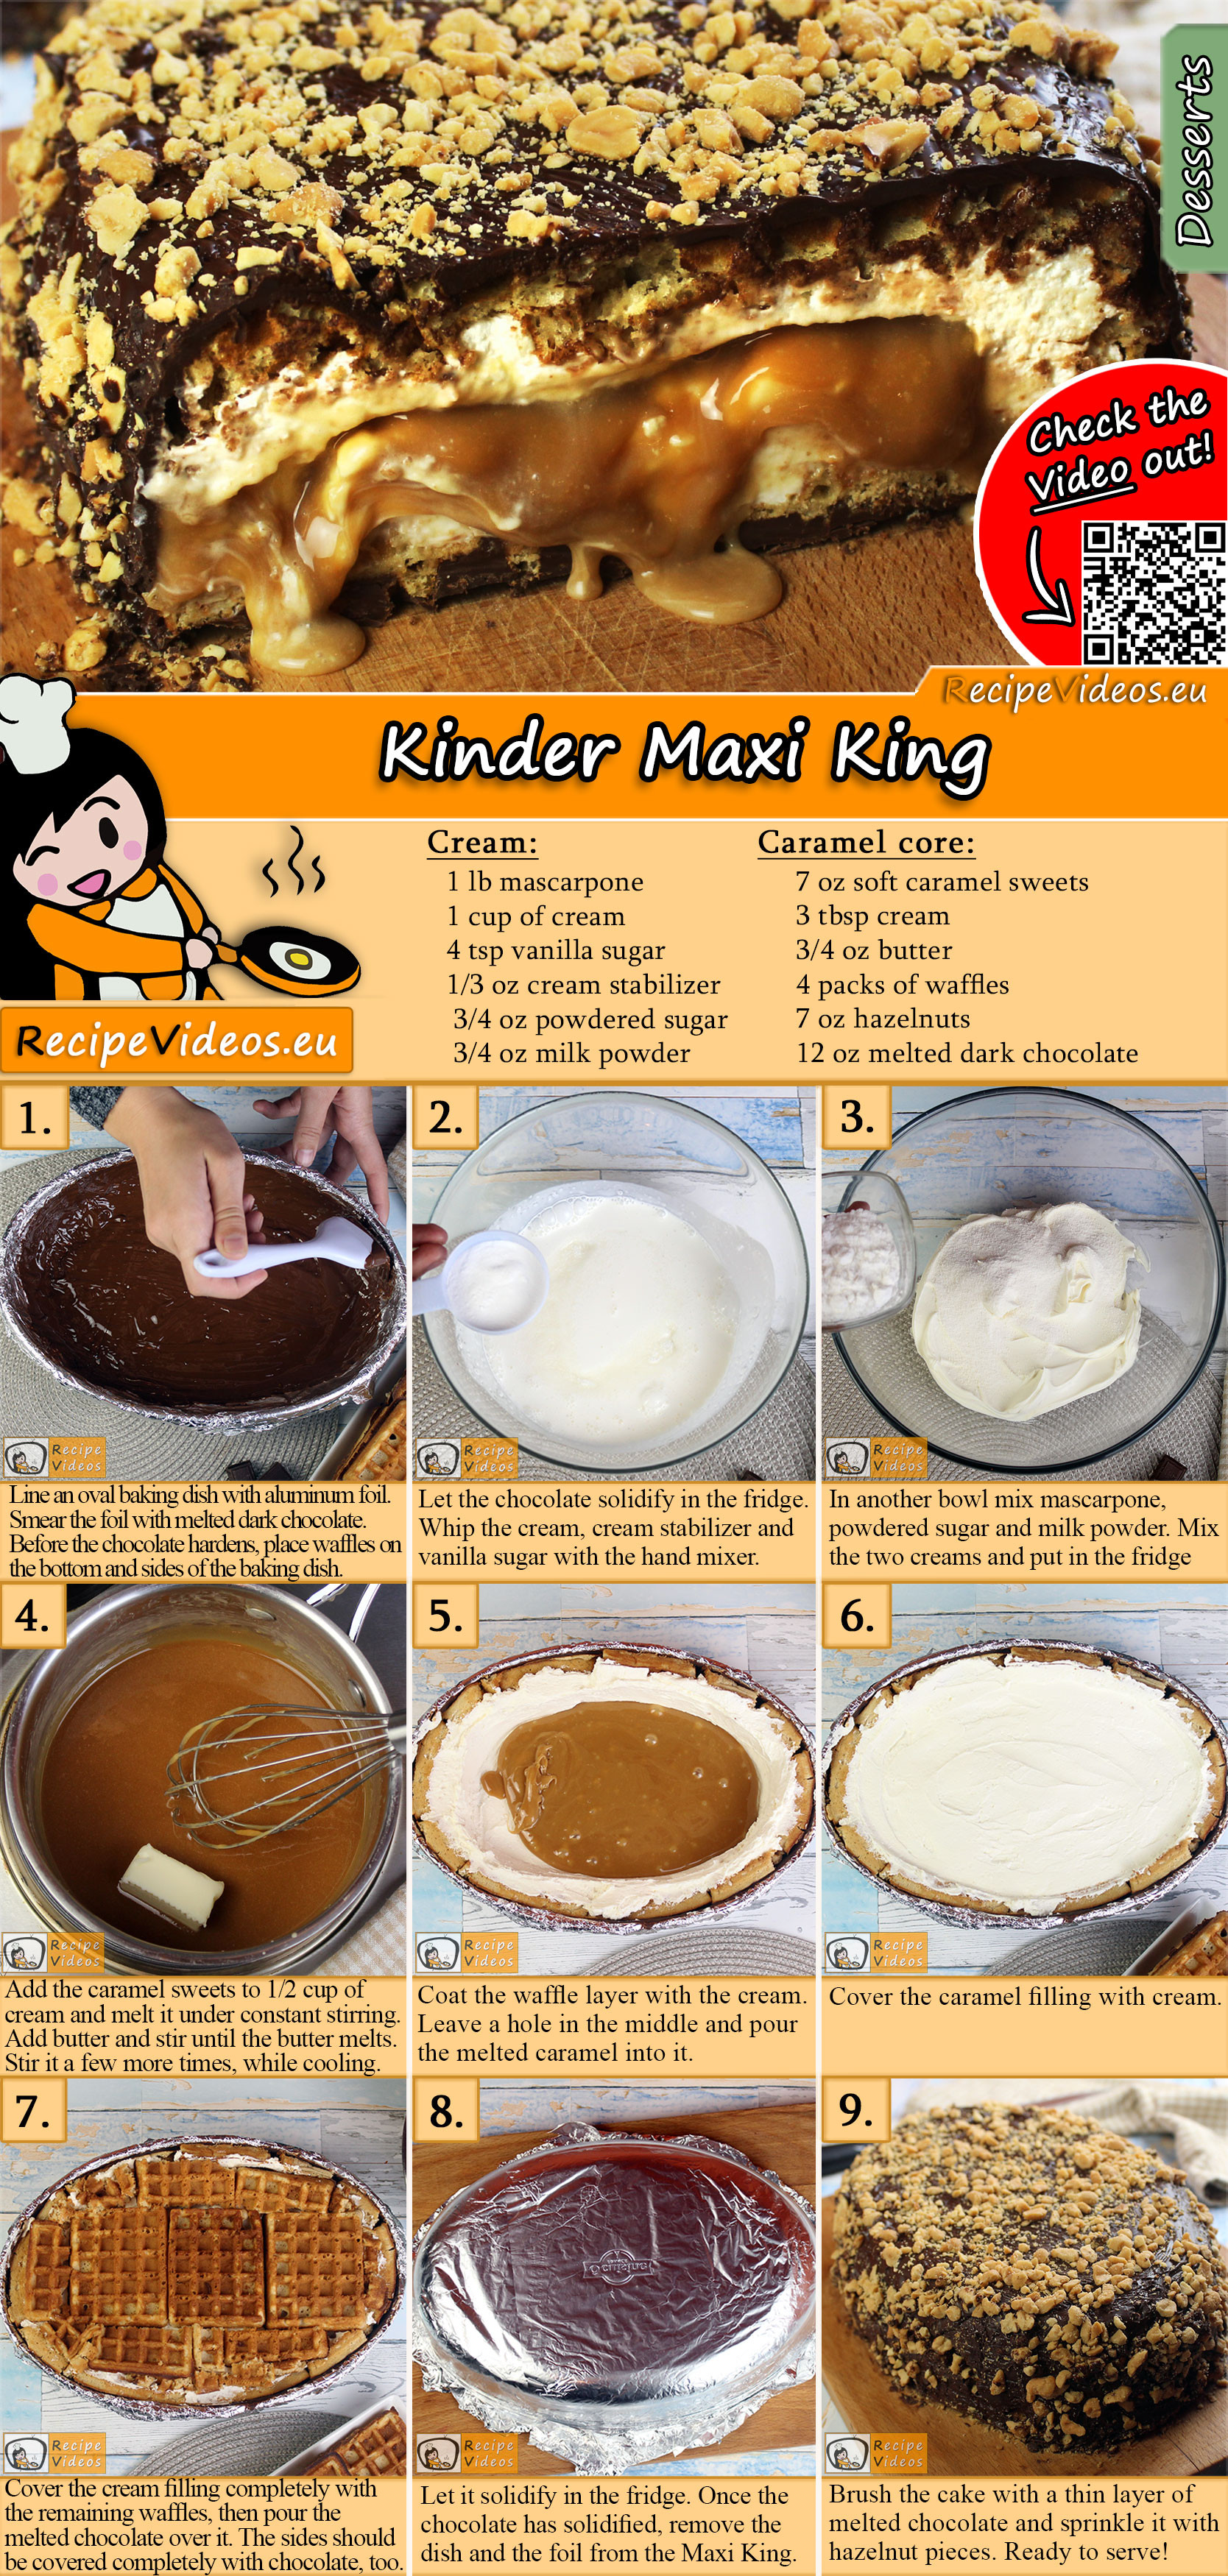 Kinder Maxi King recipe with video